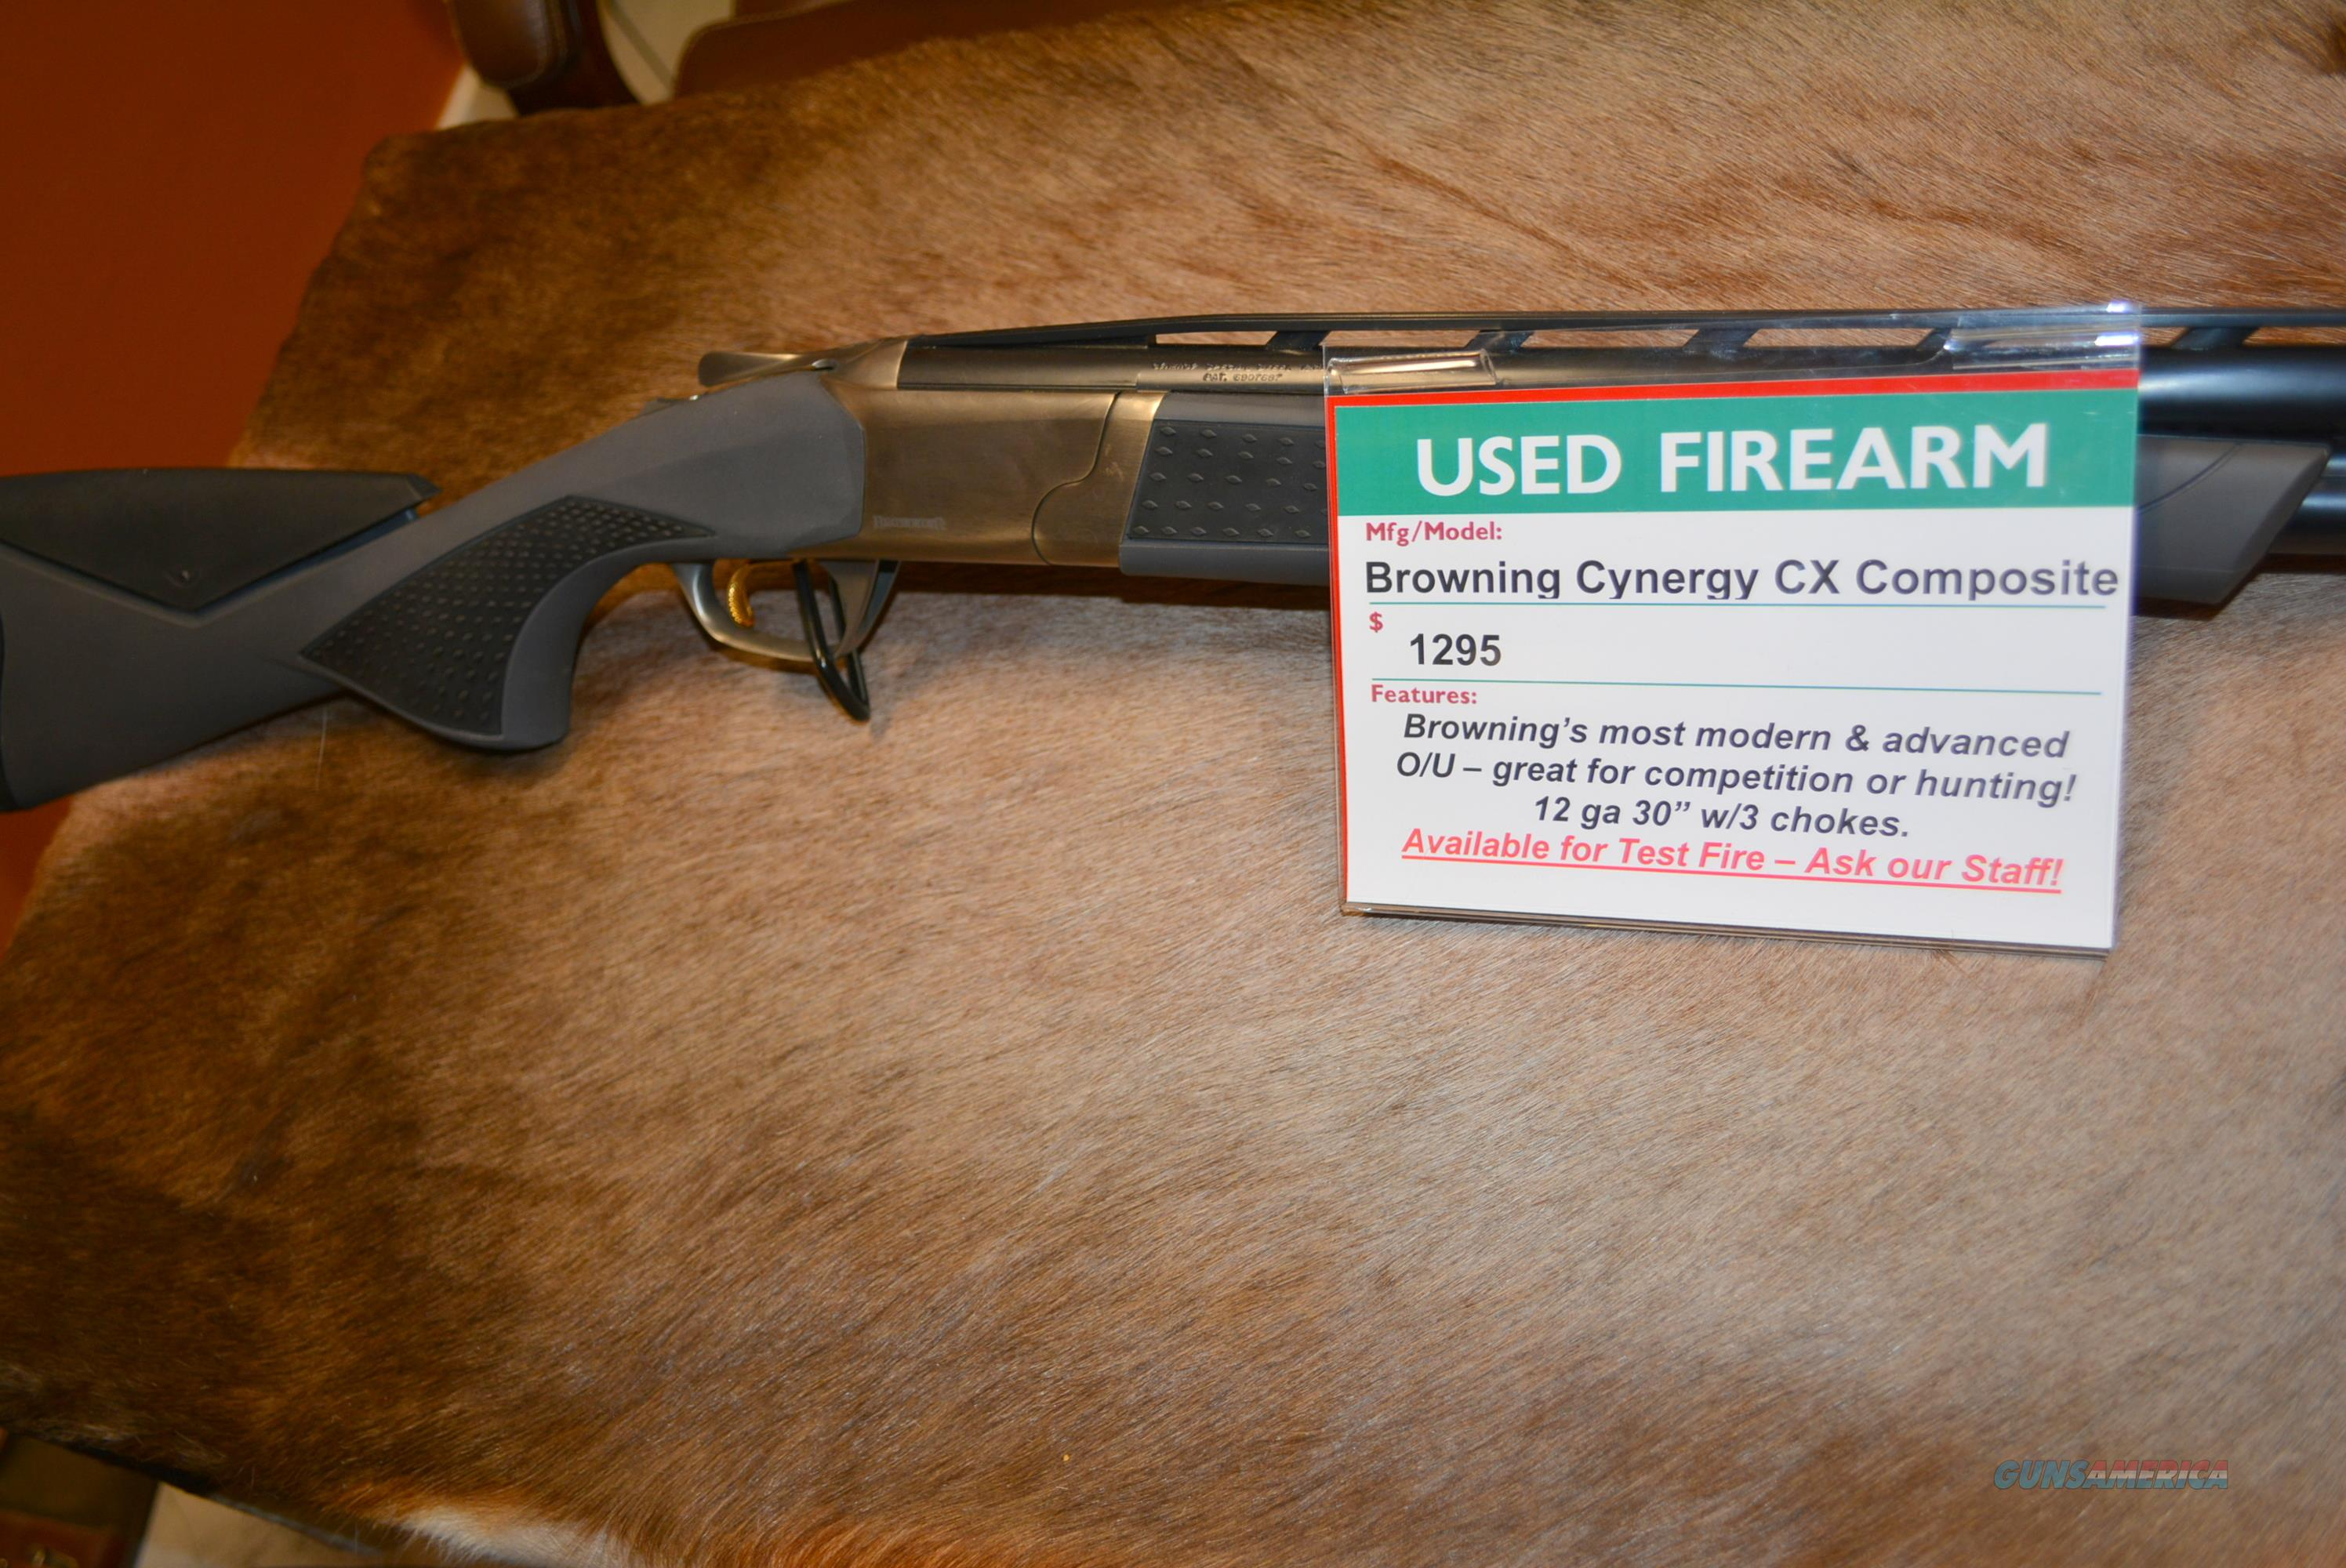 Browning Cynergy CX Composite 12/30 Used